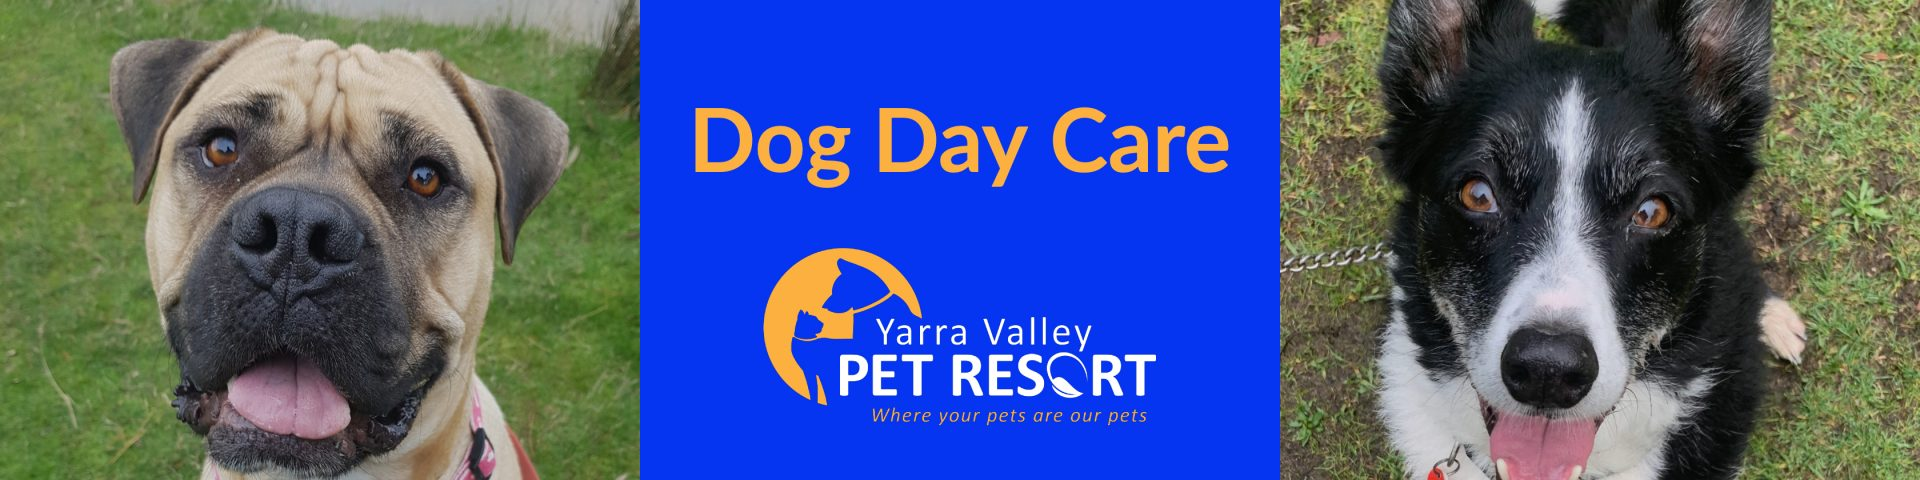 Doggie Day Care Yarra Valley Healesville Sanctuary